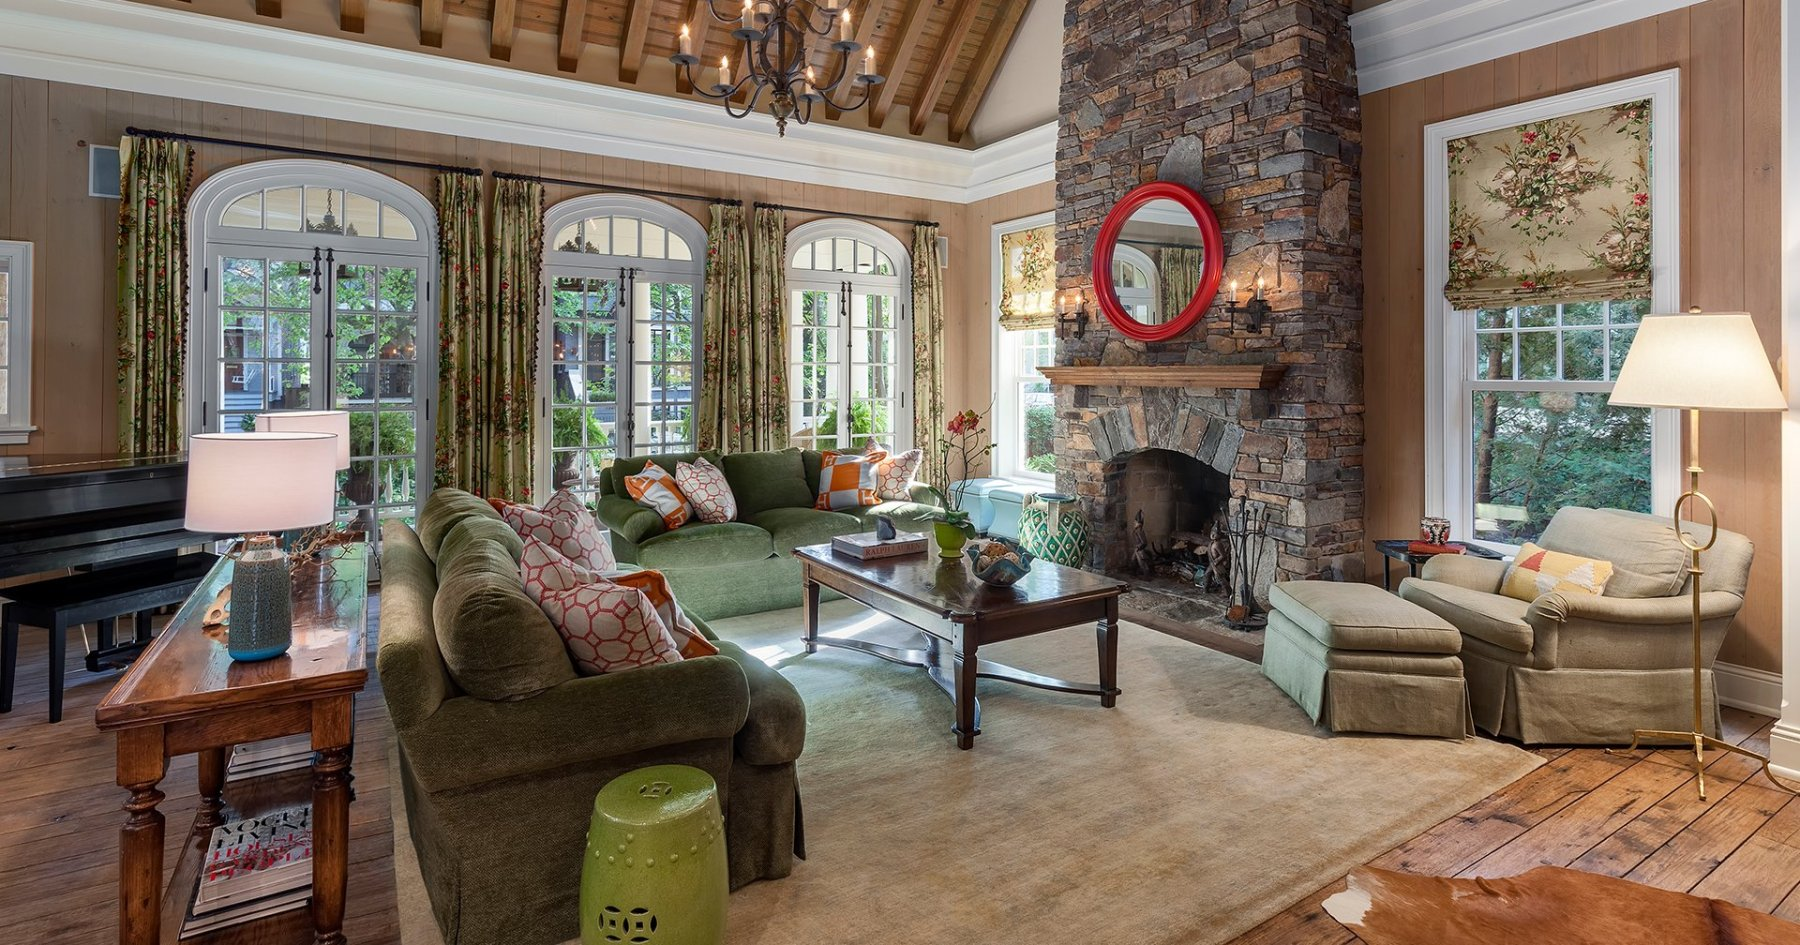 7 Chicago Properties to Help You Ace Fireplace Season